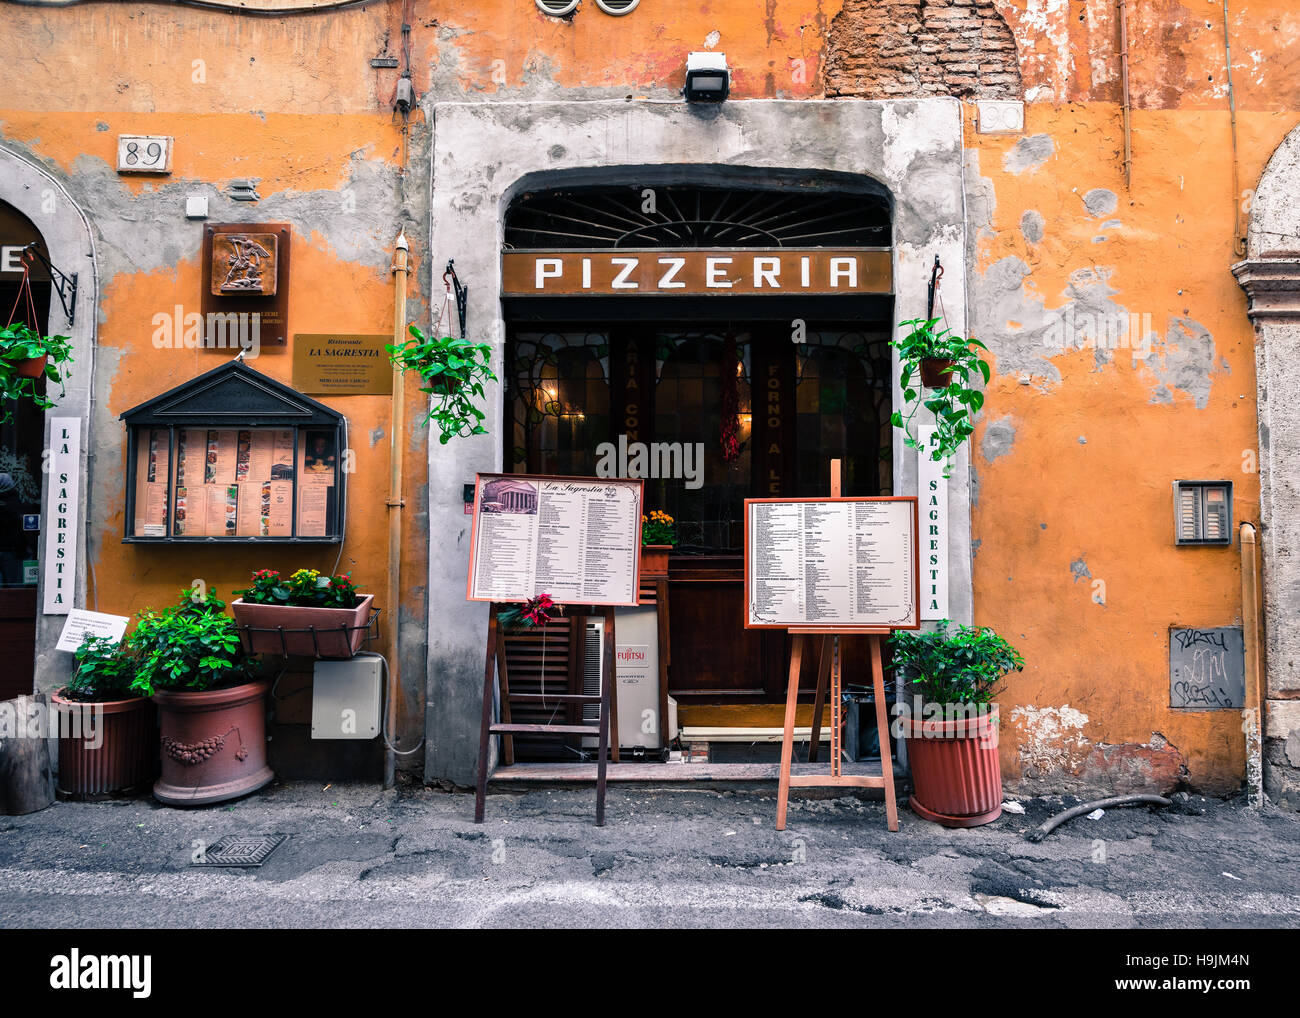 Where Is The Street Food In Rome